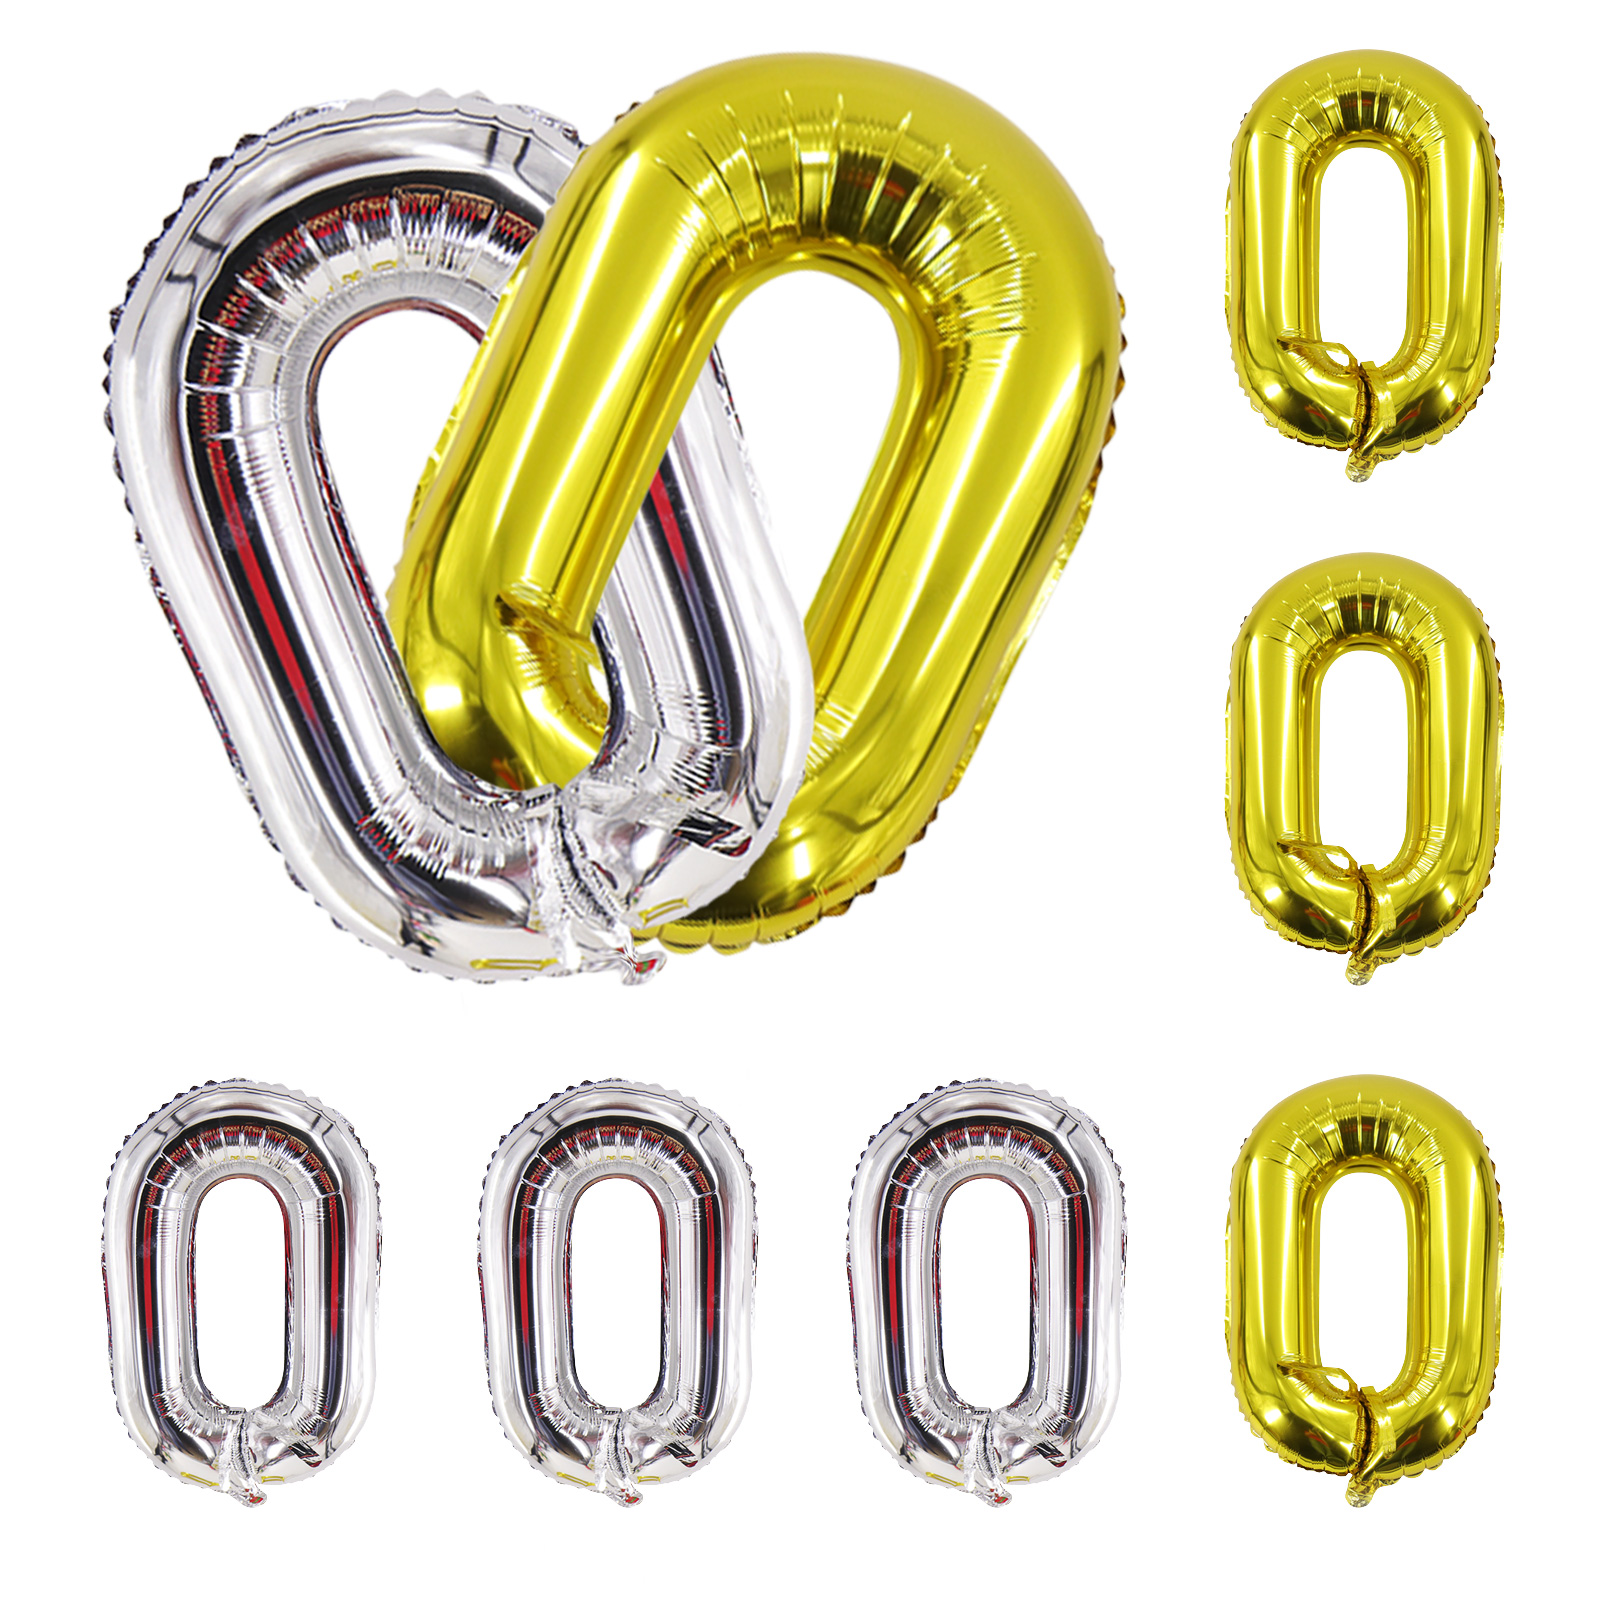 22/'/' Gold Silver Links Chain Connect Foil Balloons Wedding Birthday Party Decor